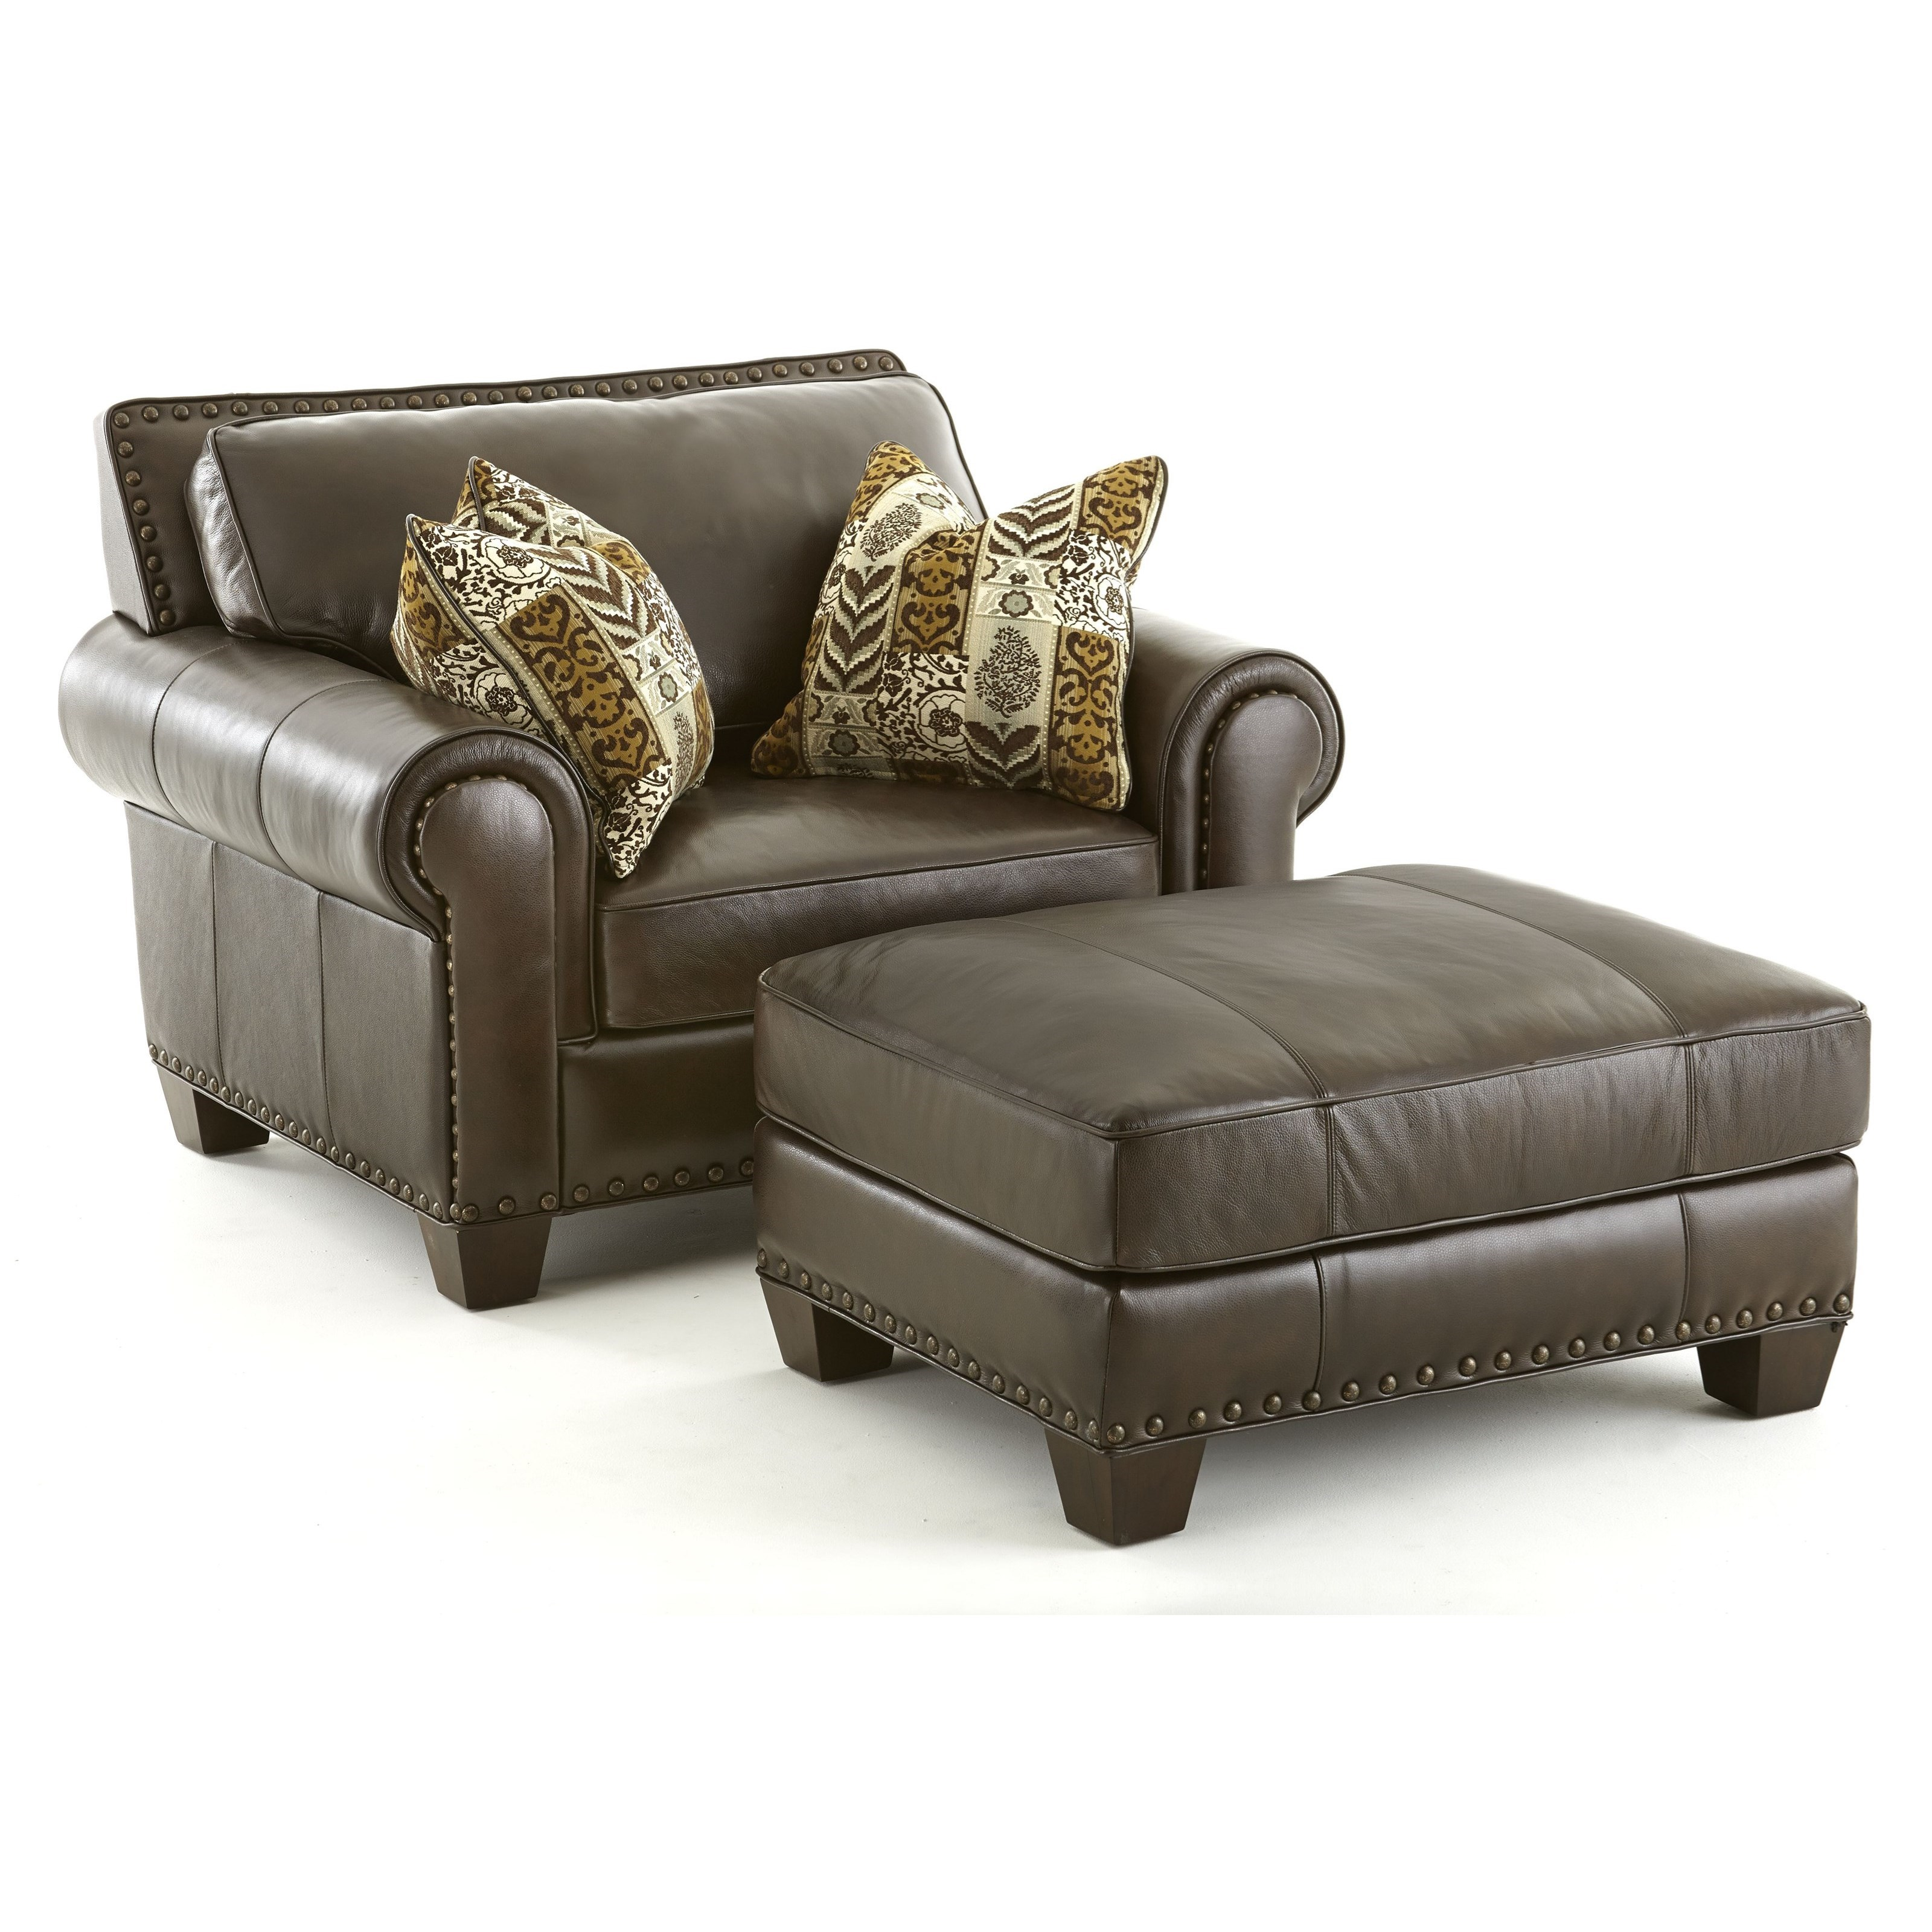 Steve Silver Escher Transitional Chair and Ottoman - Item Number: SR810C+T-Coffee Bean